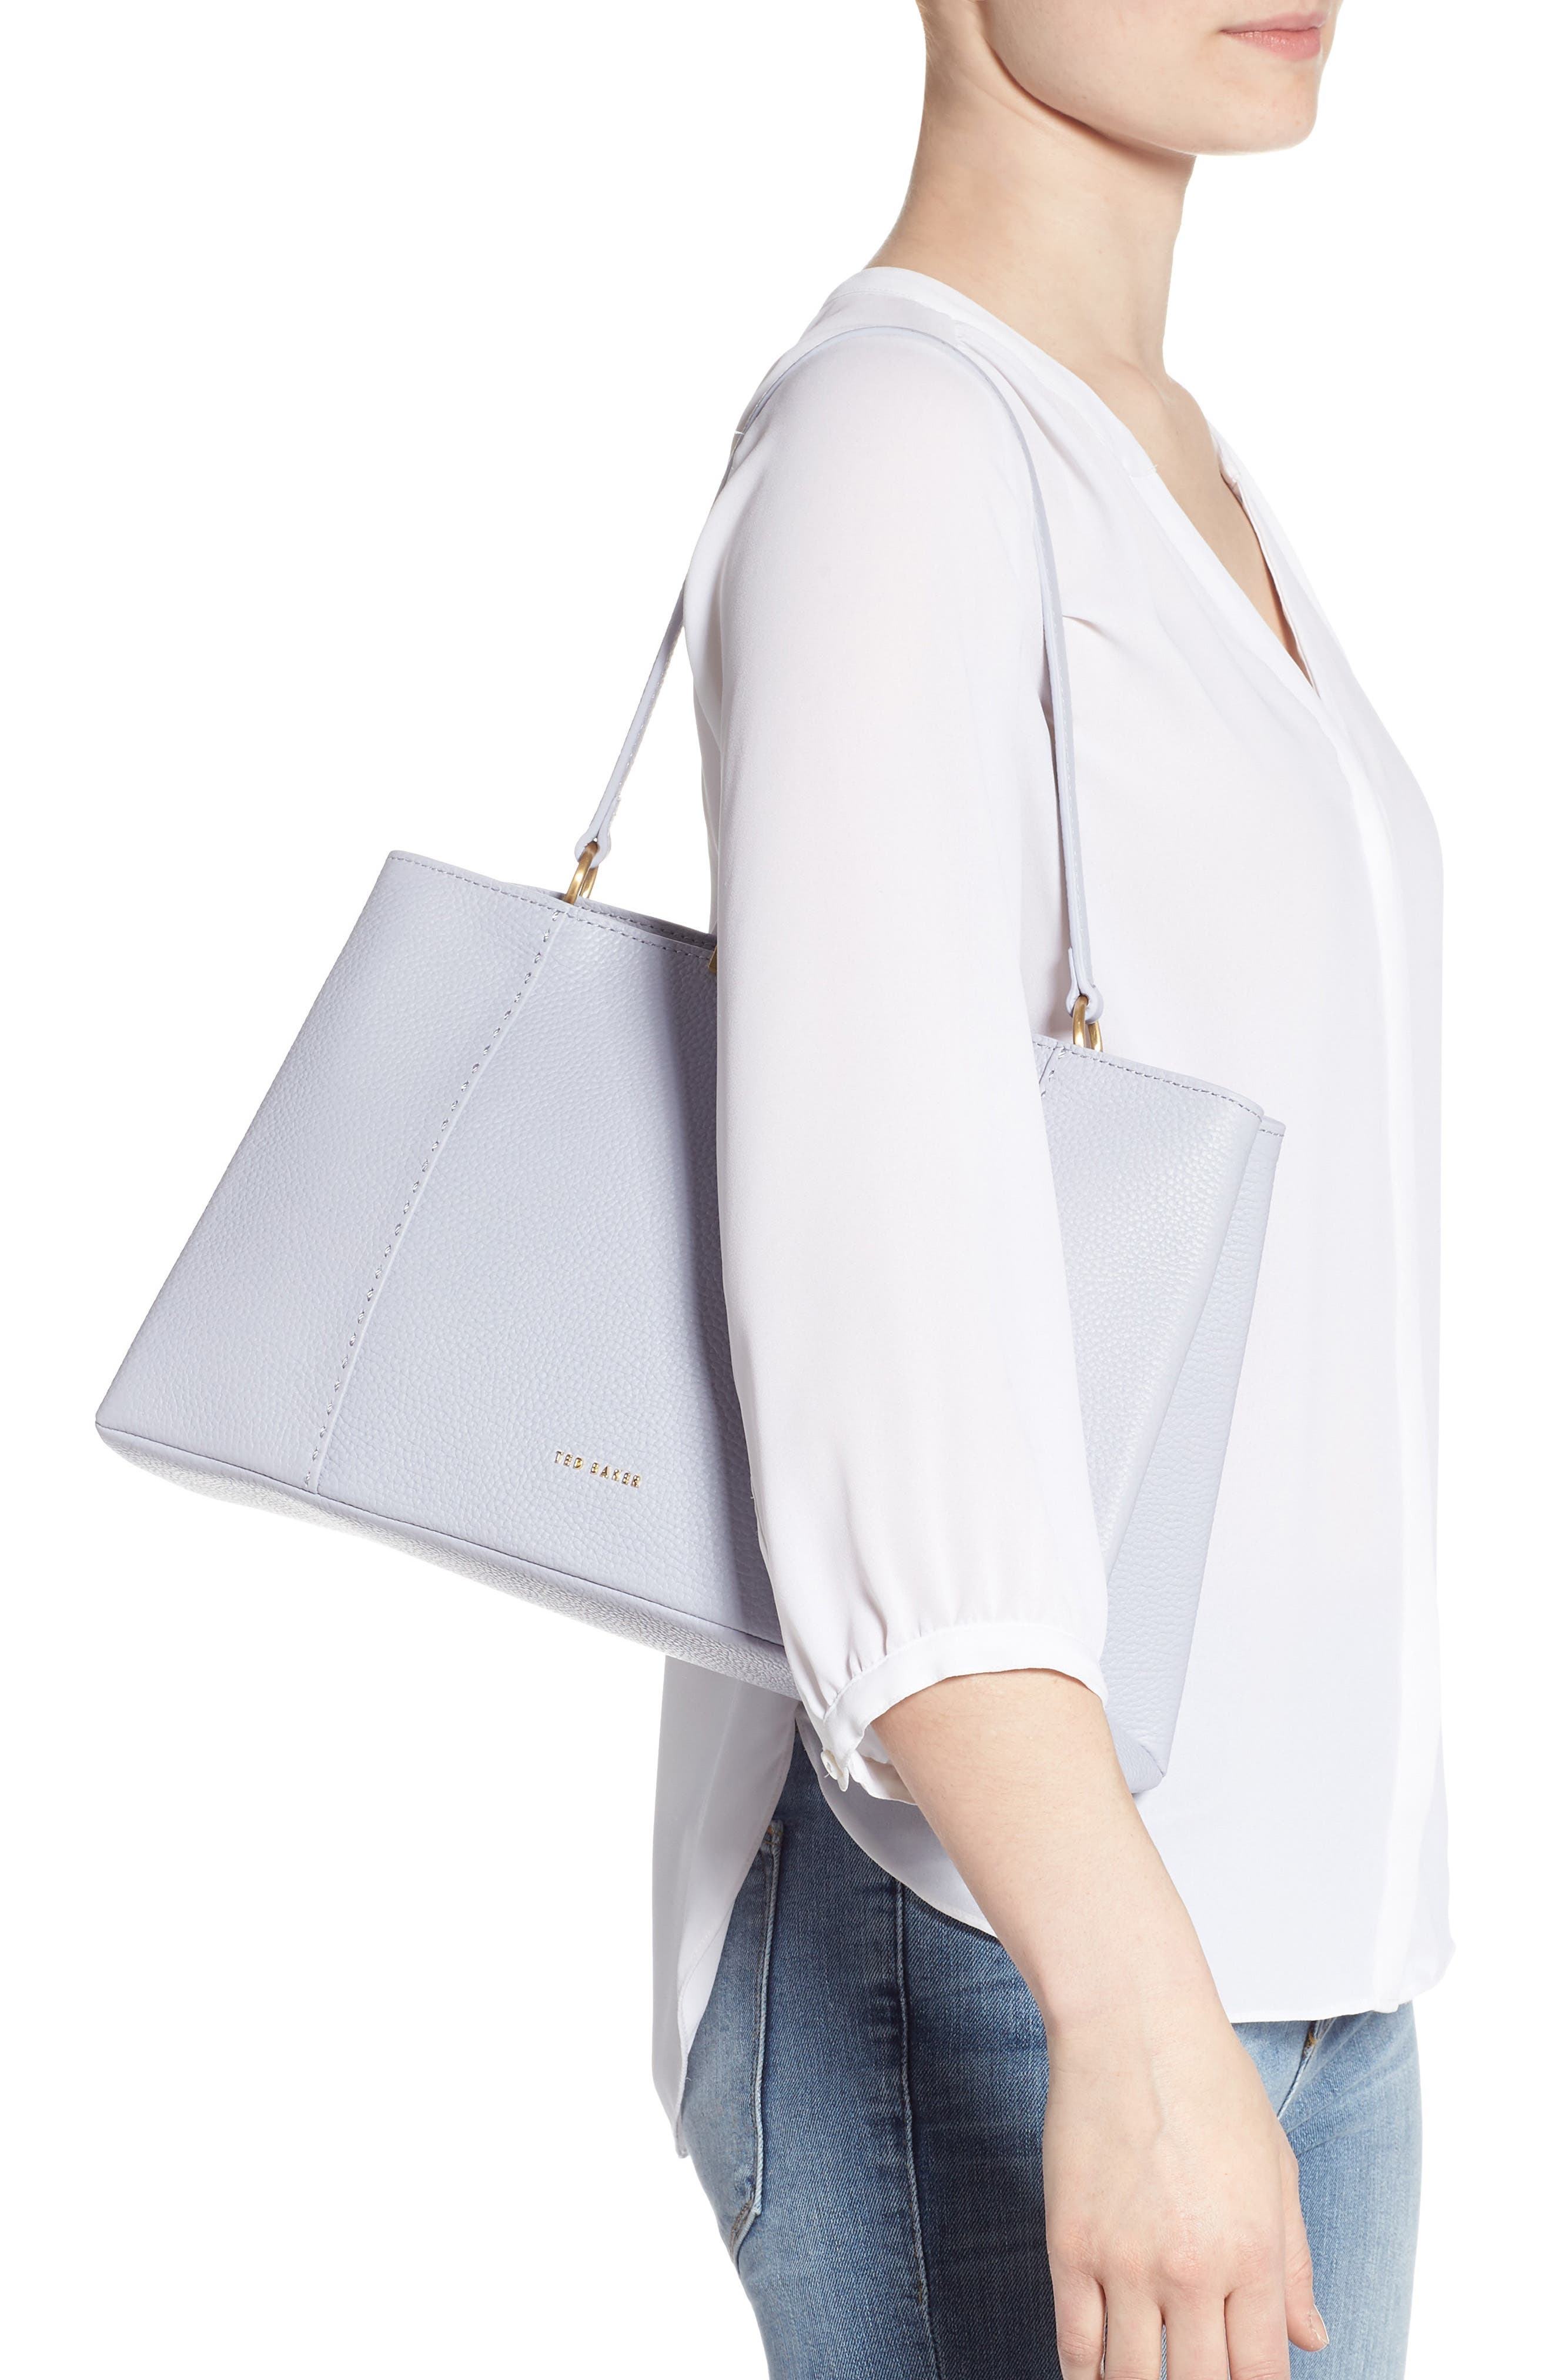 TED BAKER LONDON, Camieli Bow Tote, Alternate thumbnail 2, color, PL-BLUE